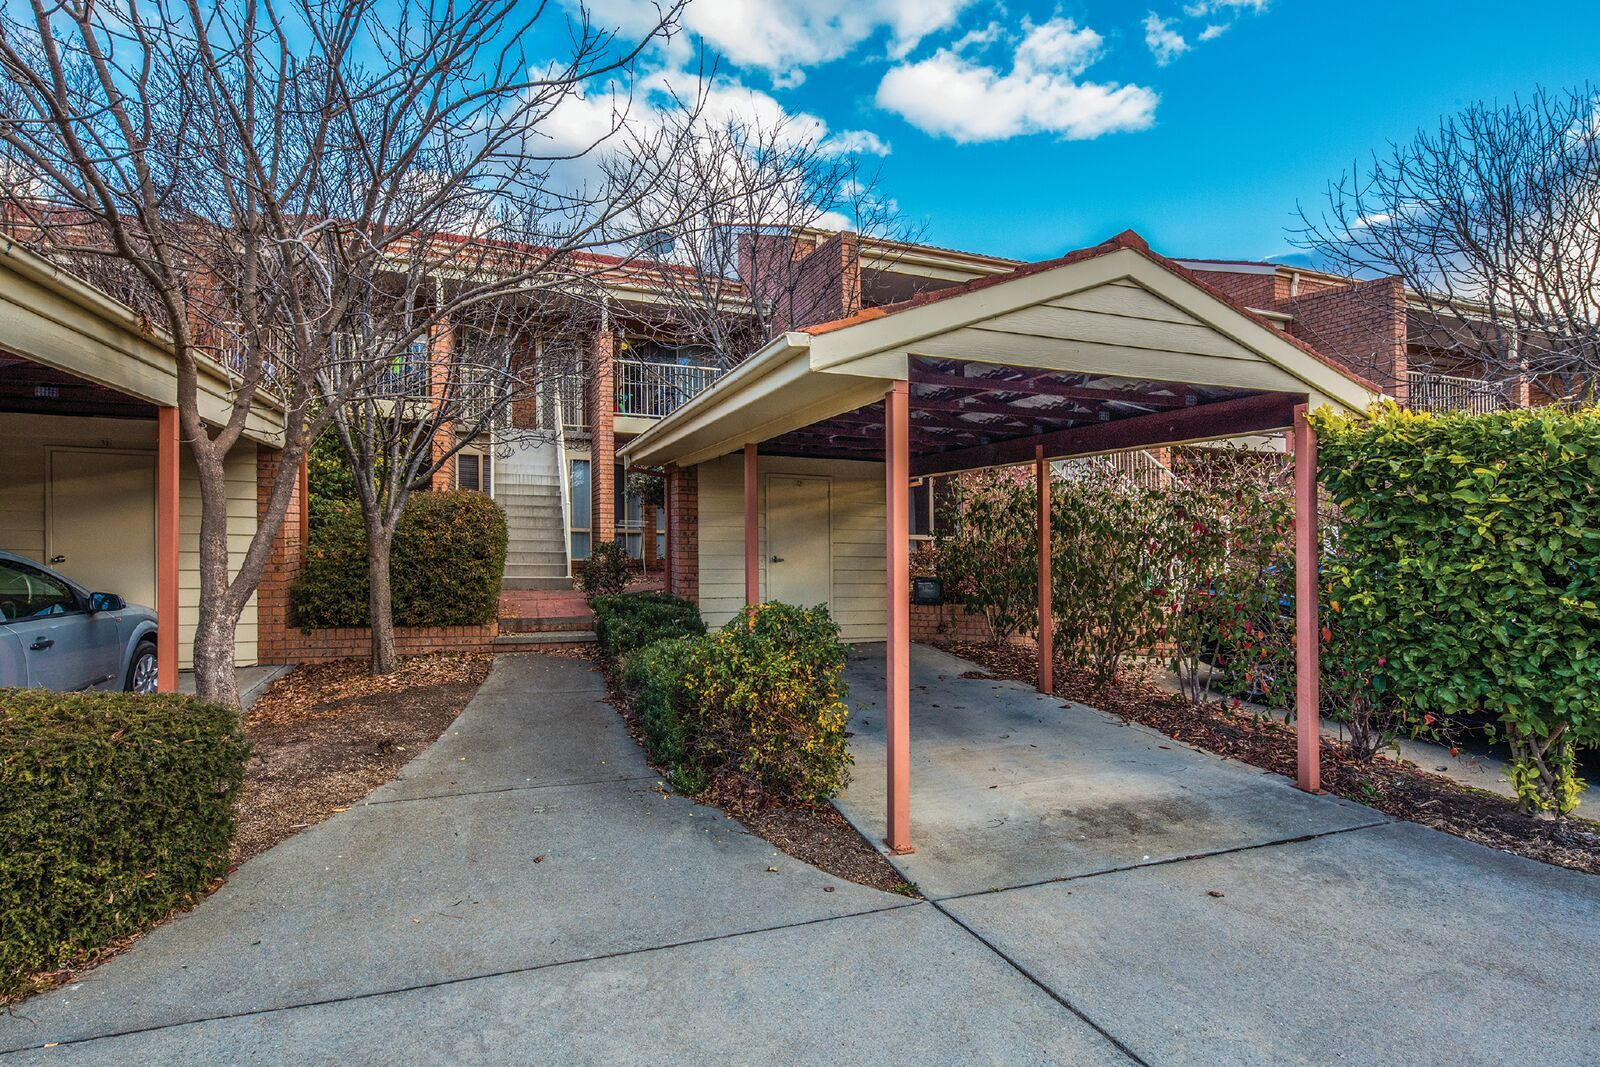 38/12 Albermarle Place, Phillip ACT 2606, Image 7